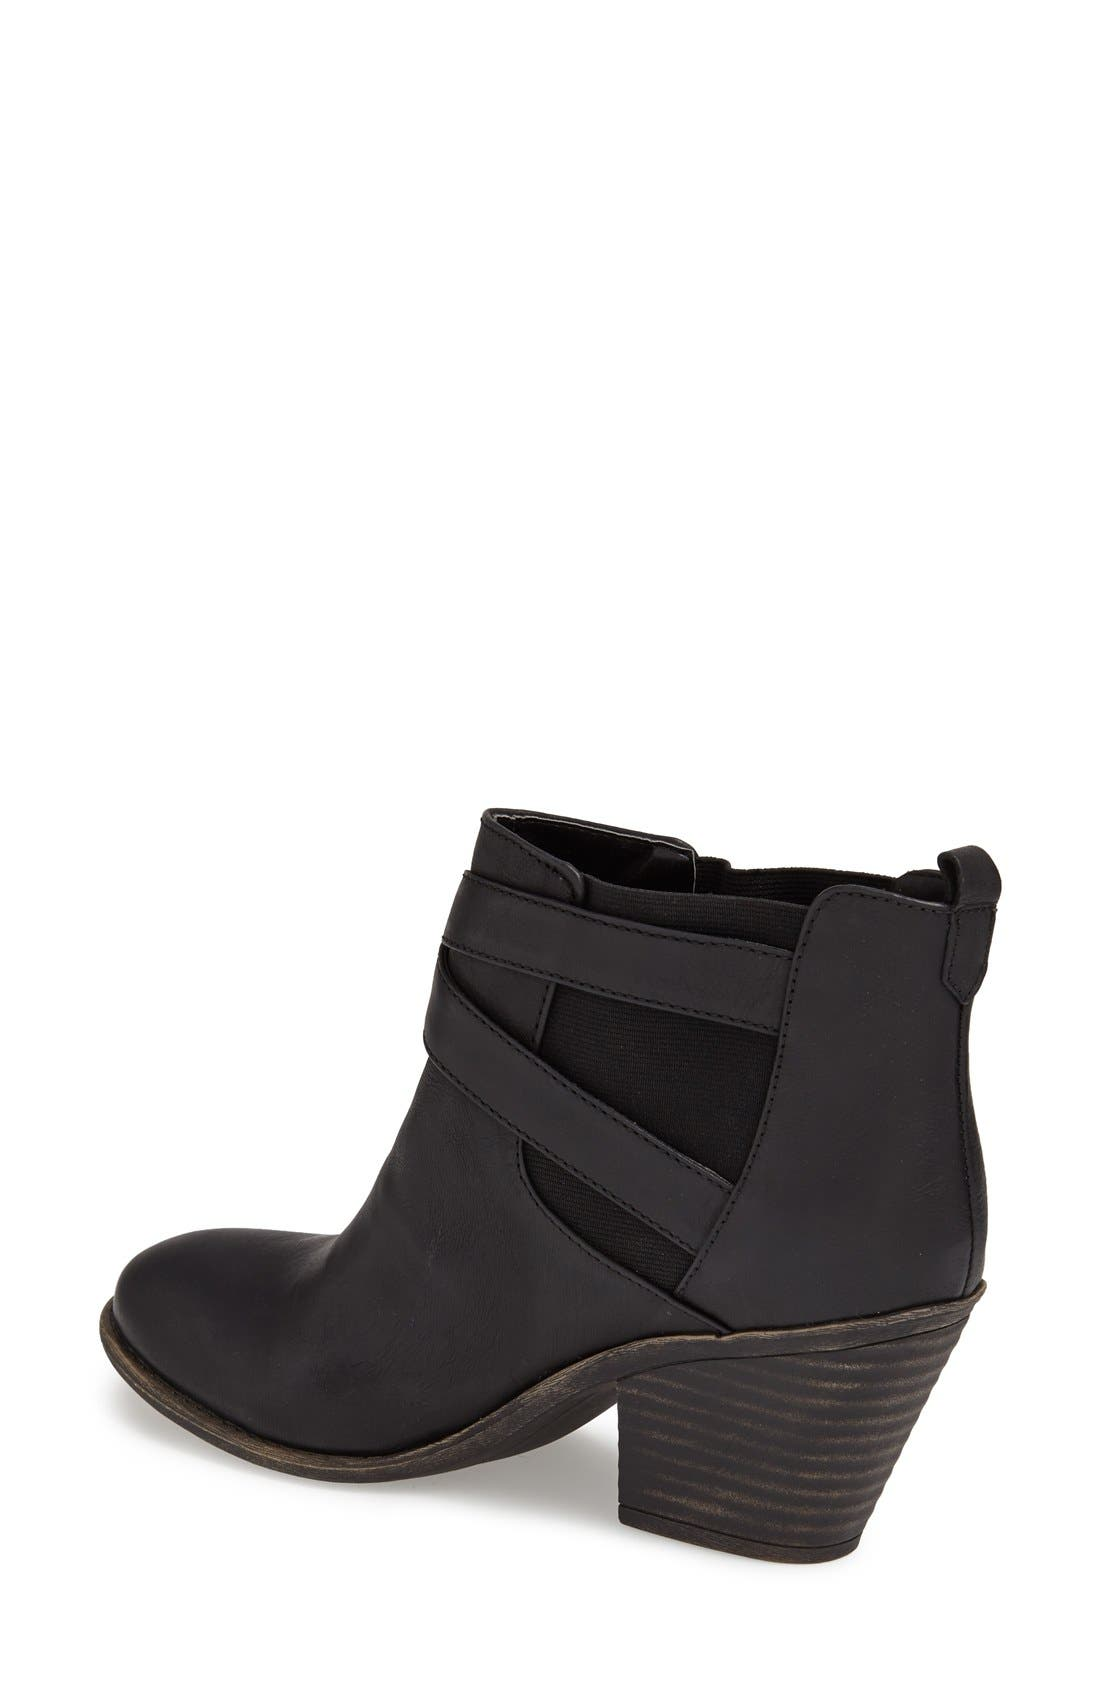 Alternate Image 2  - Sole Society 'Maris' Leather Bootie (Women)